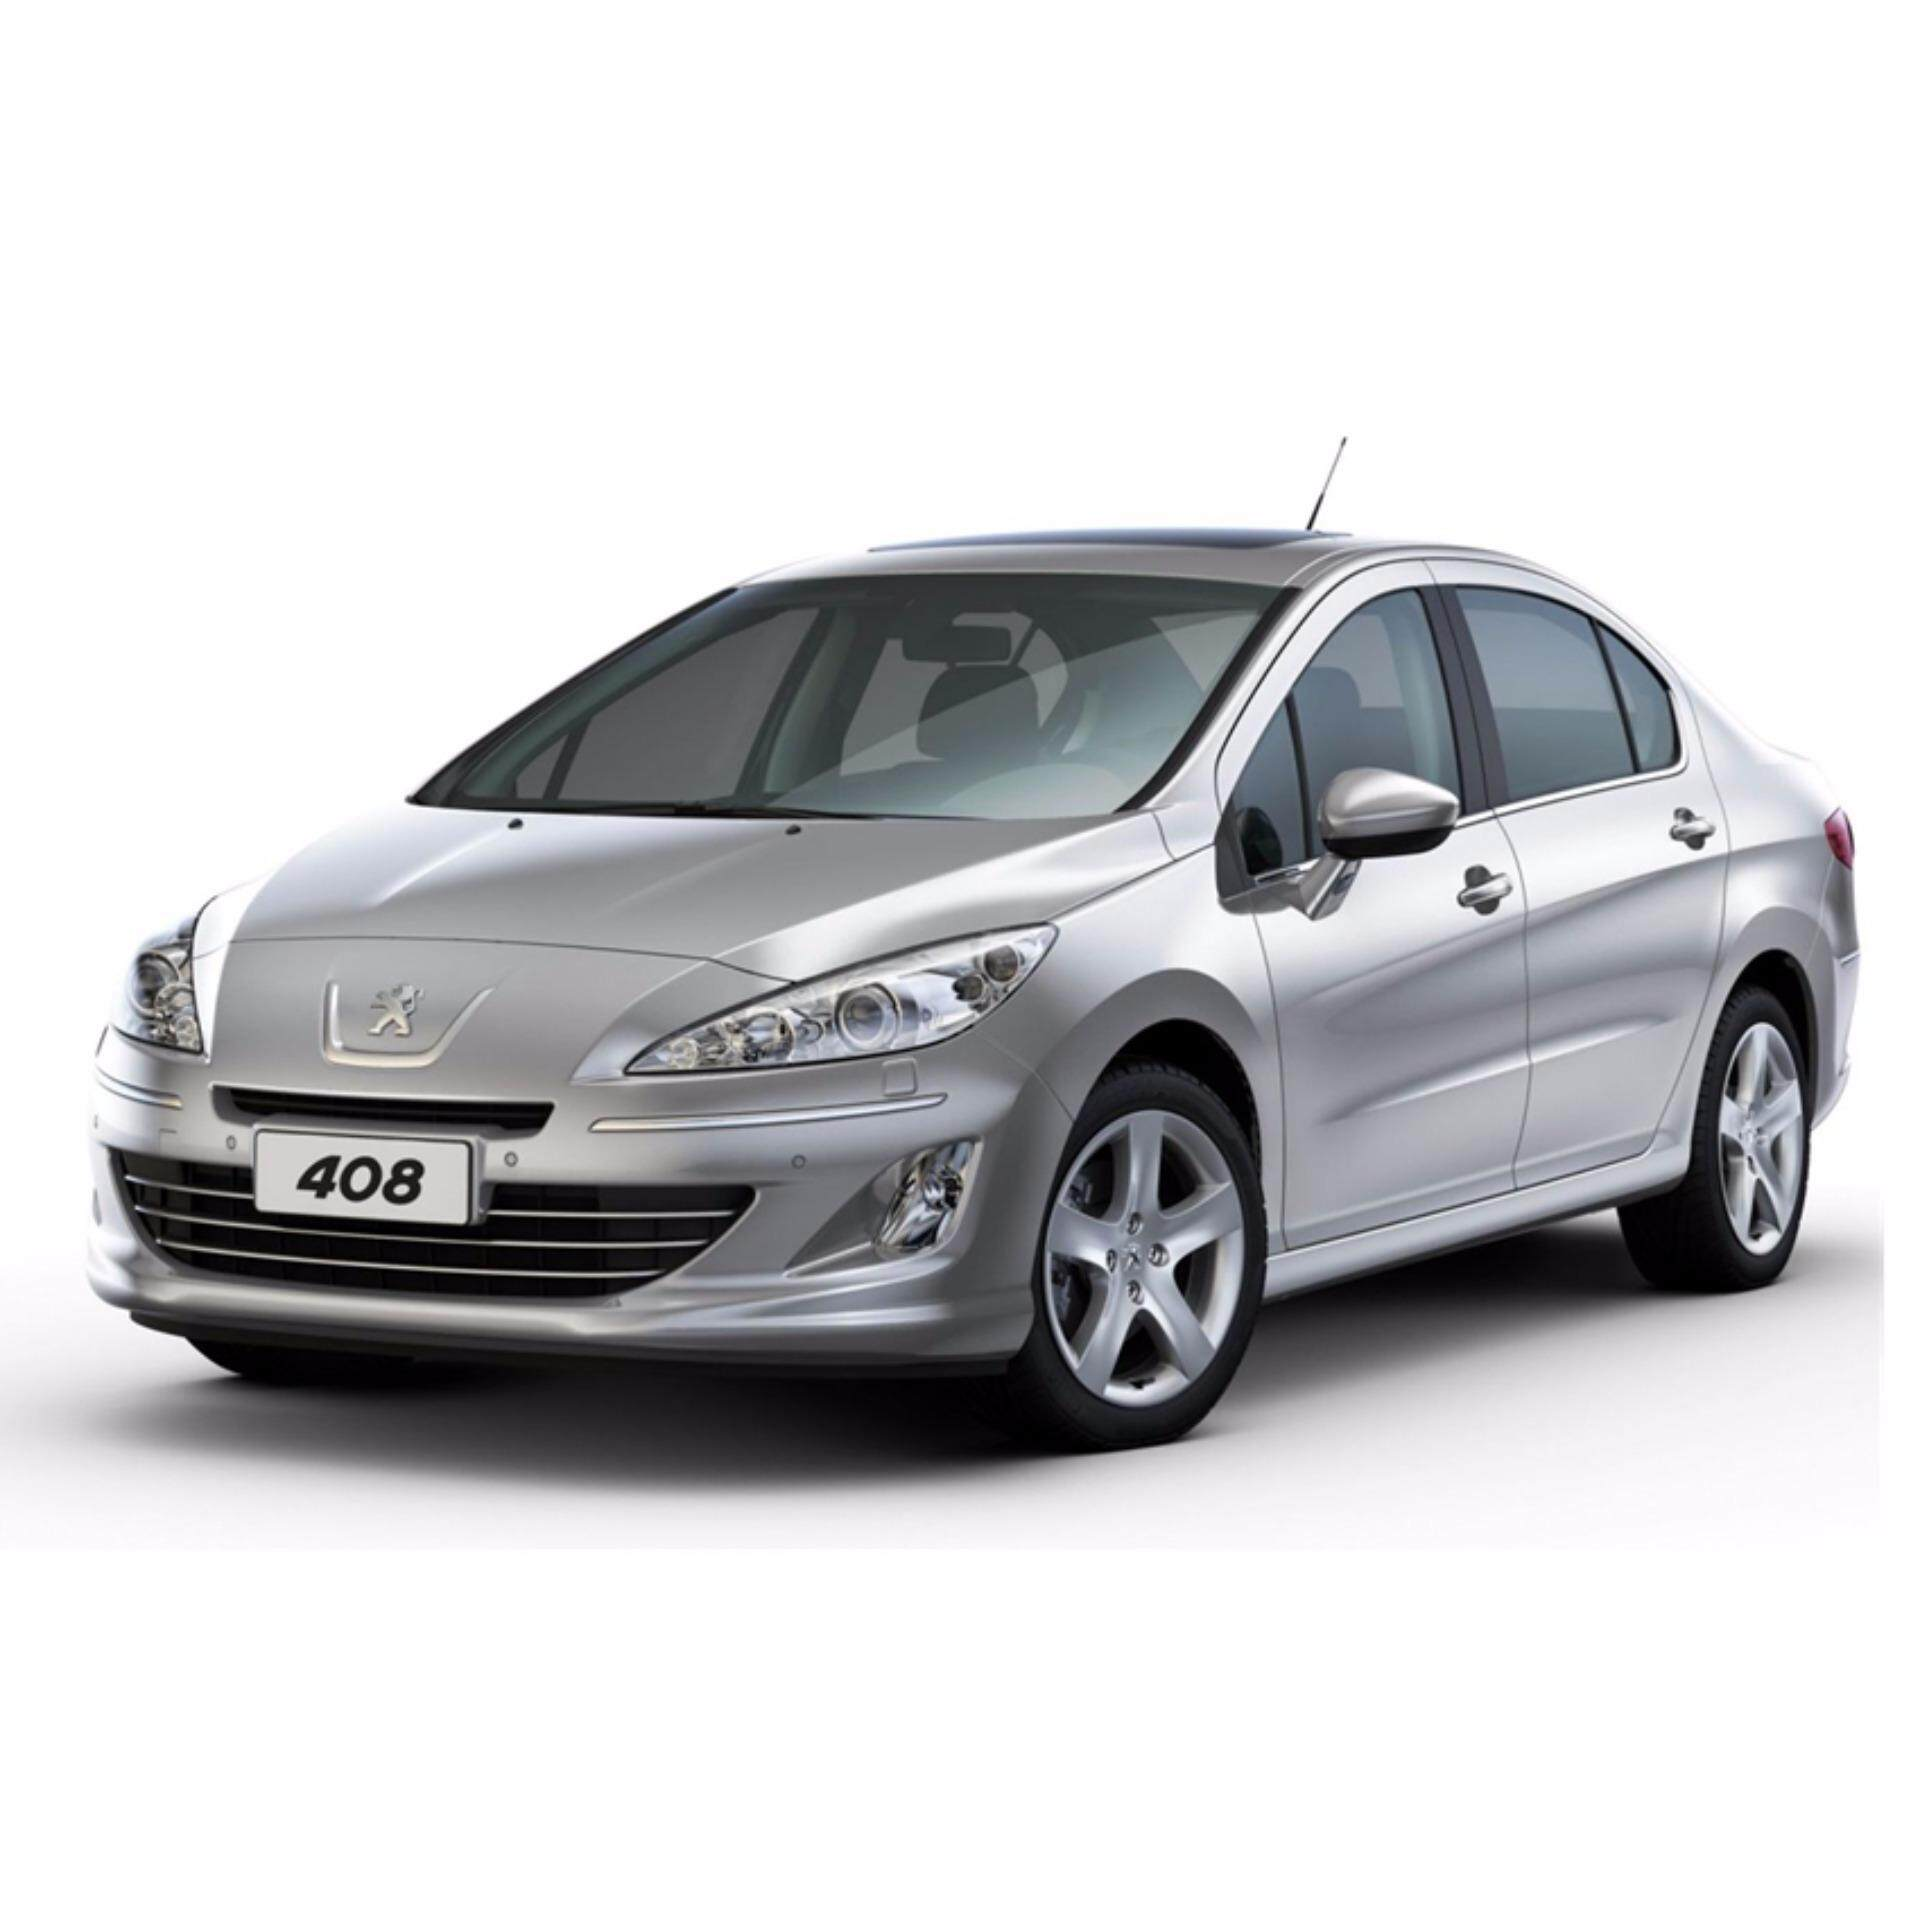 Transparent Car Cover With Available Size (Dust-Proof, Waterproof, Dispossable Plastic) For Car Body - Peugeot 408